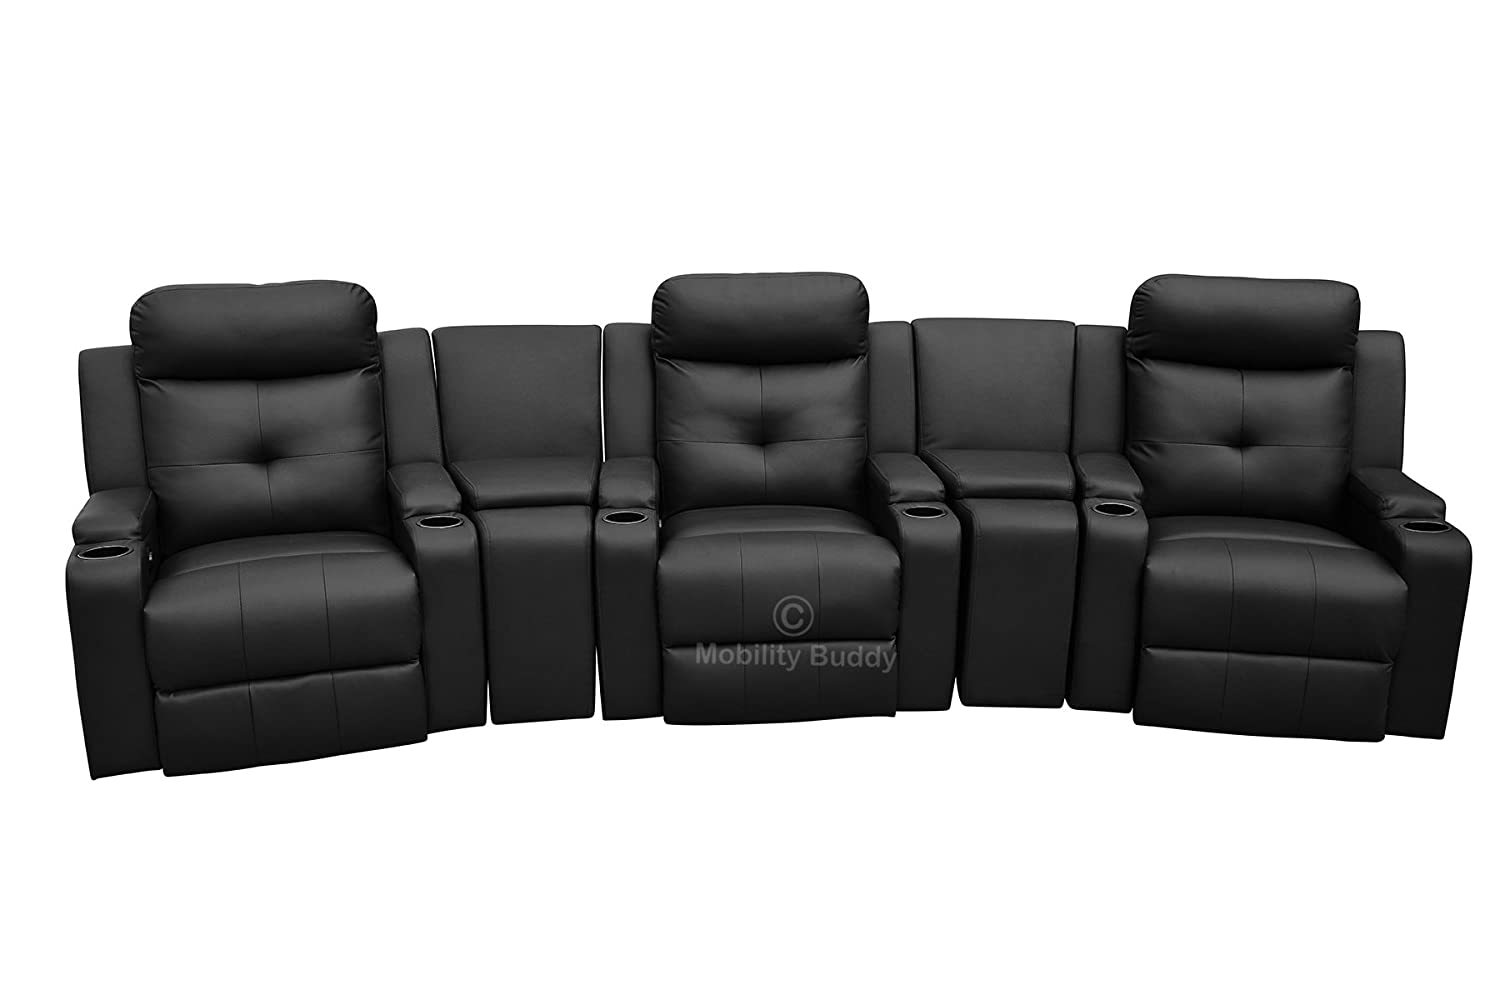 Surprising Mobility Buddy Odeon Black Bonded Leather Electrically Evergreenethics Interior Chair Design Evergreenethicsorg